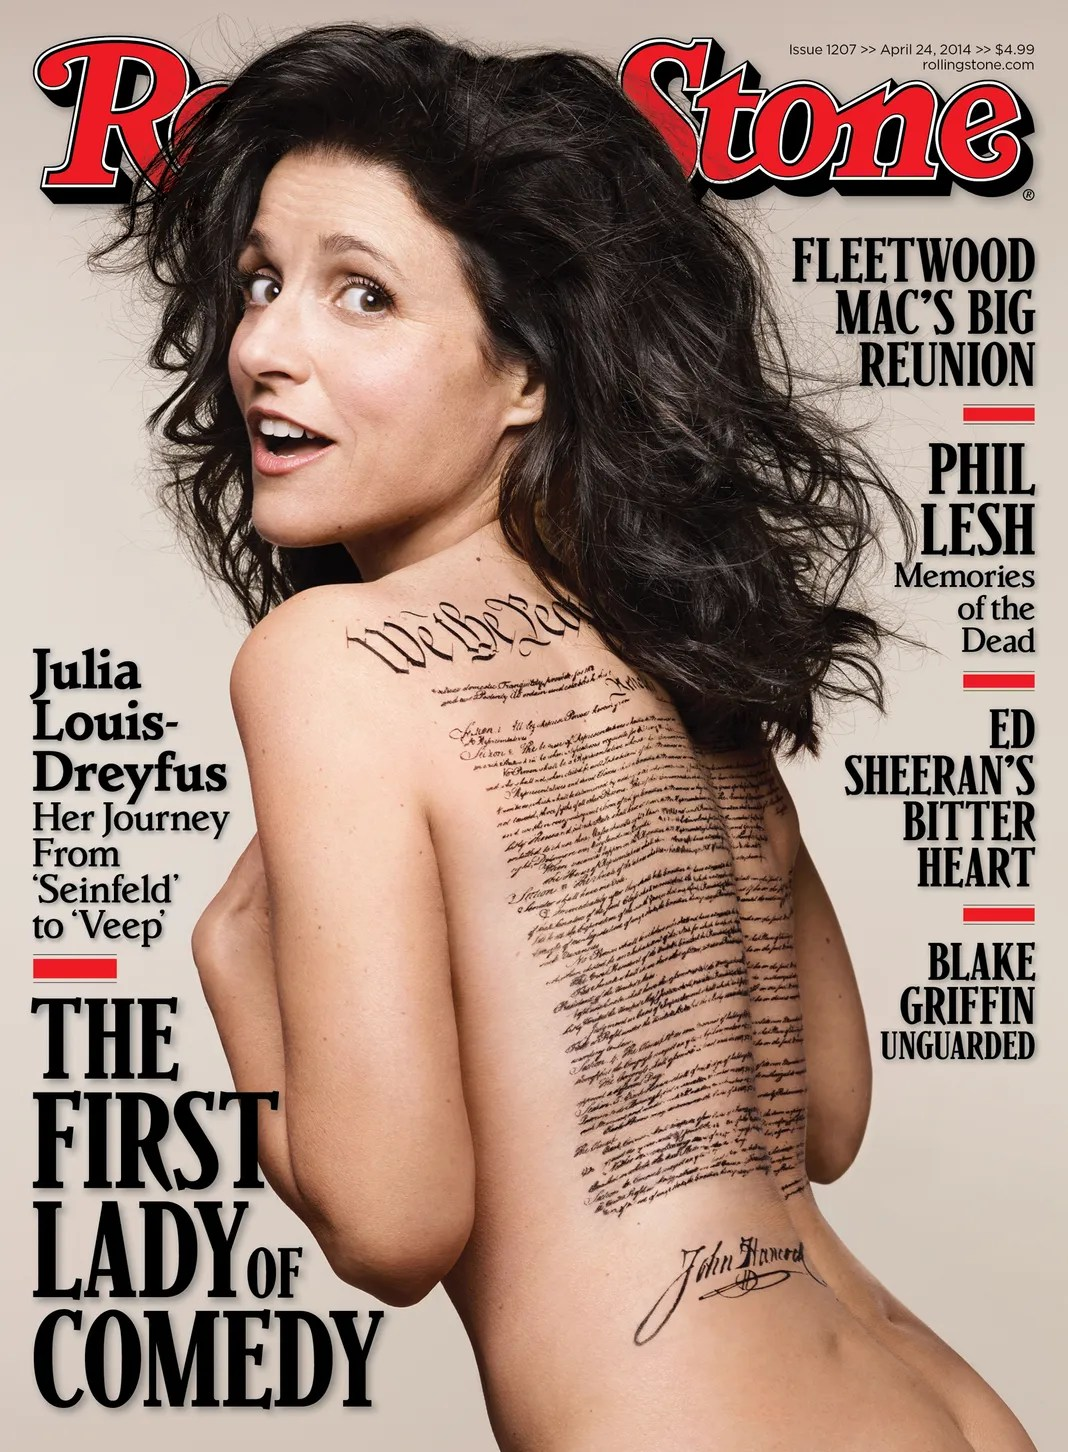 The 27 Sexiest and Most Scandalous Rolling Stone Covers